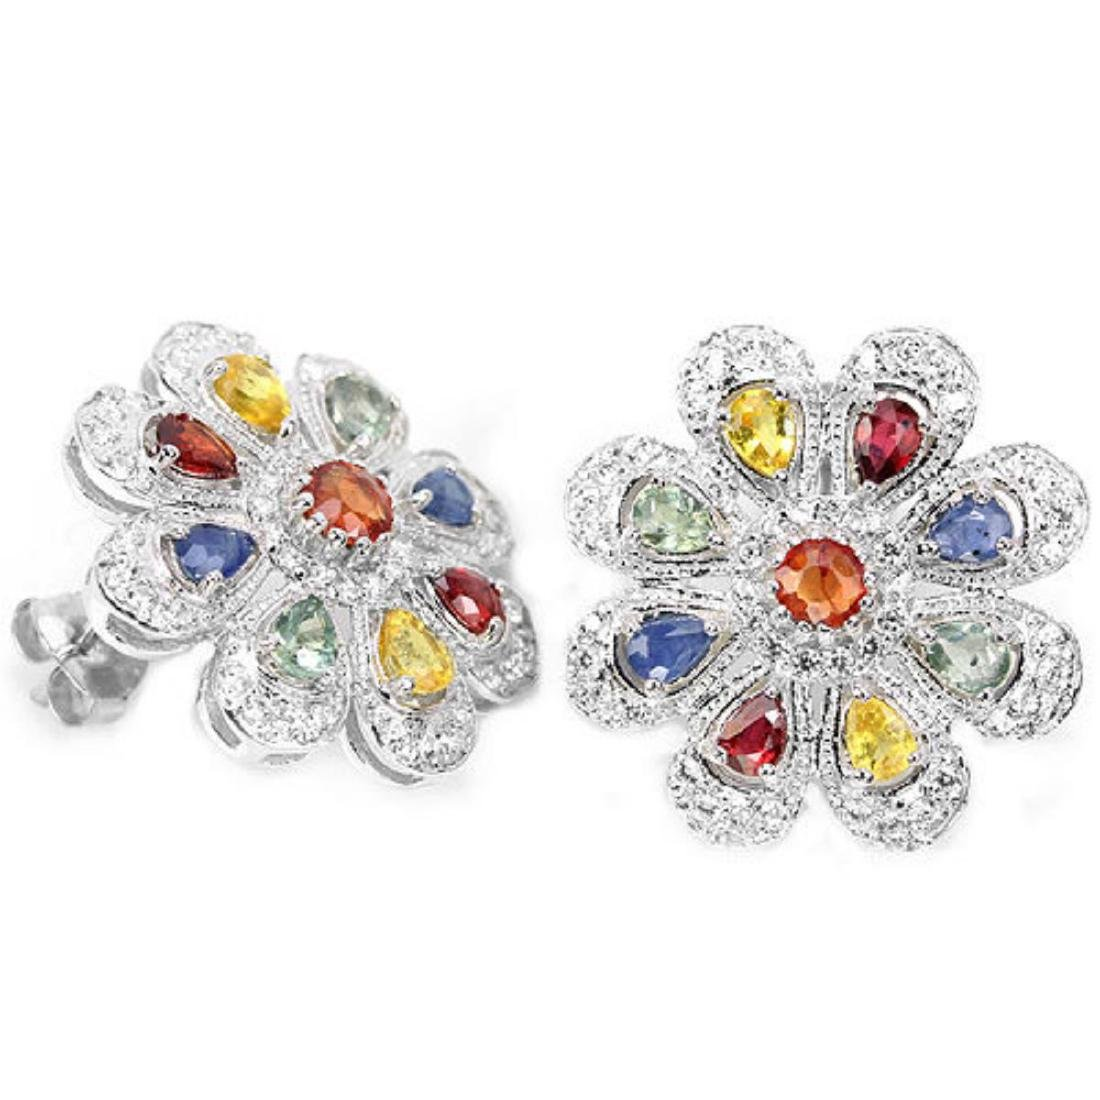 Natural Fancy Color Sapphire 41 Carats Earrings - 2